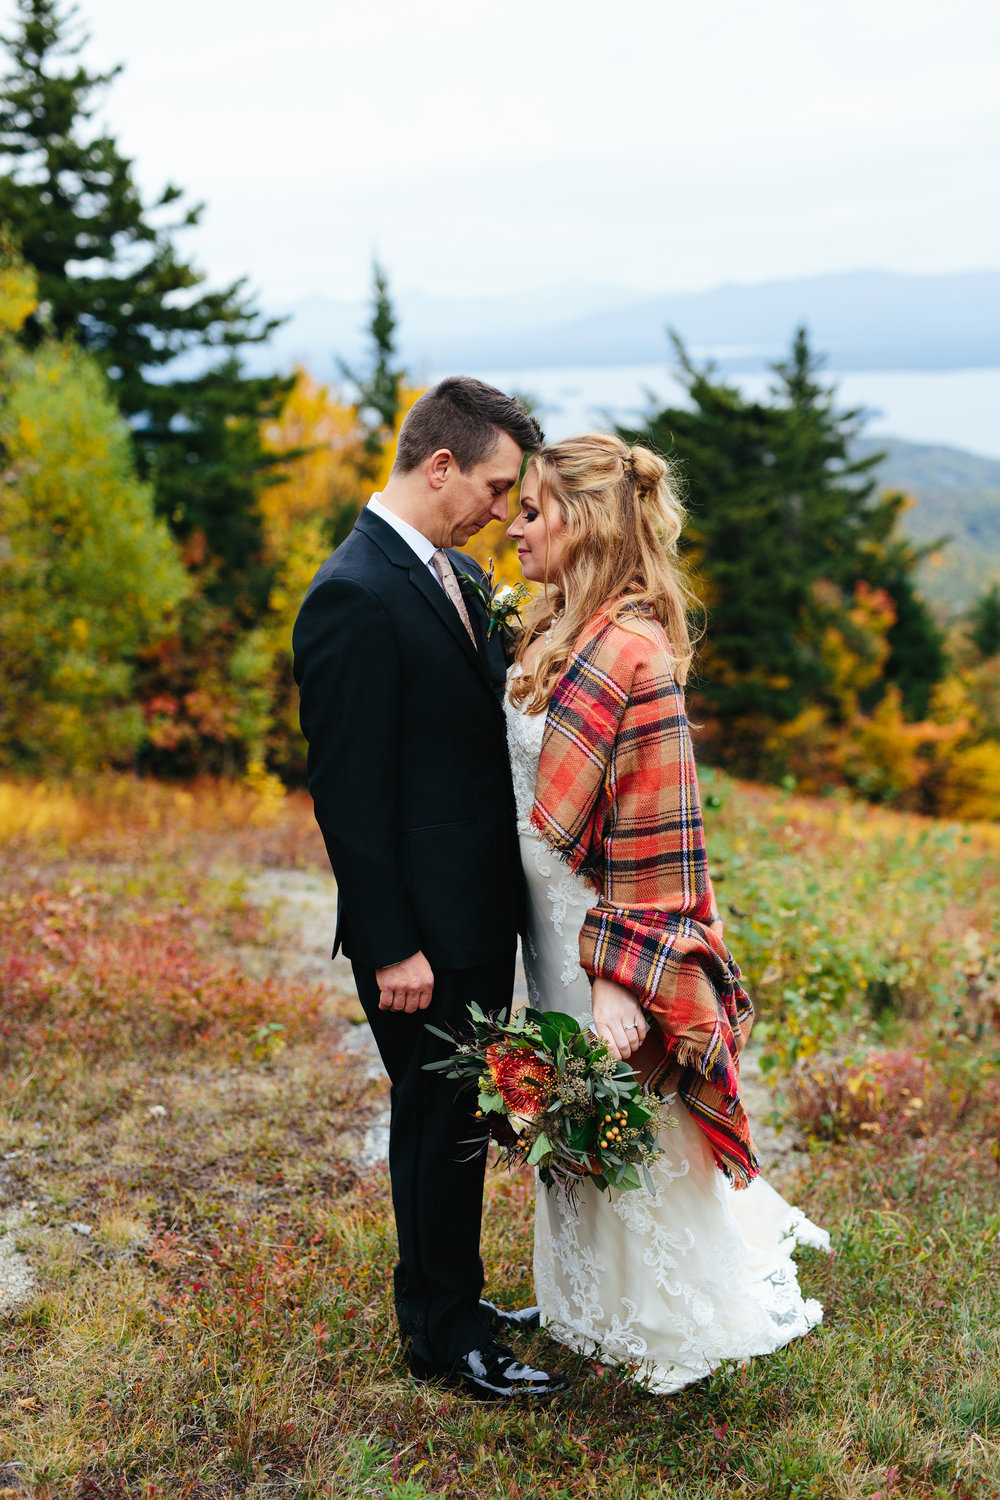 Amanda and Neil - October wedding in the White Mountains, NH